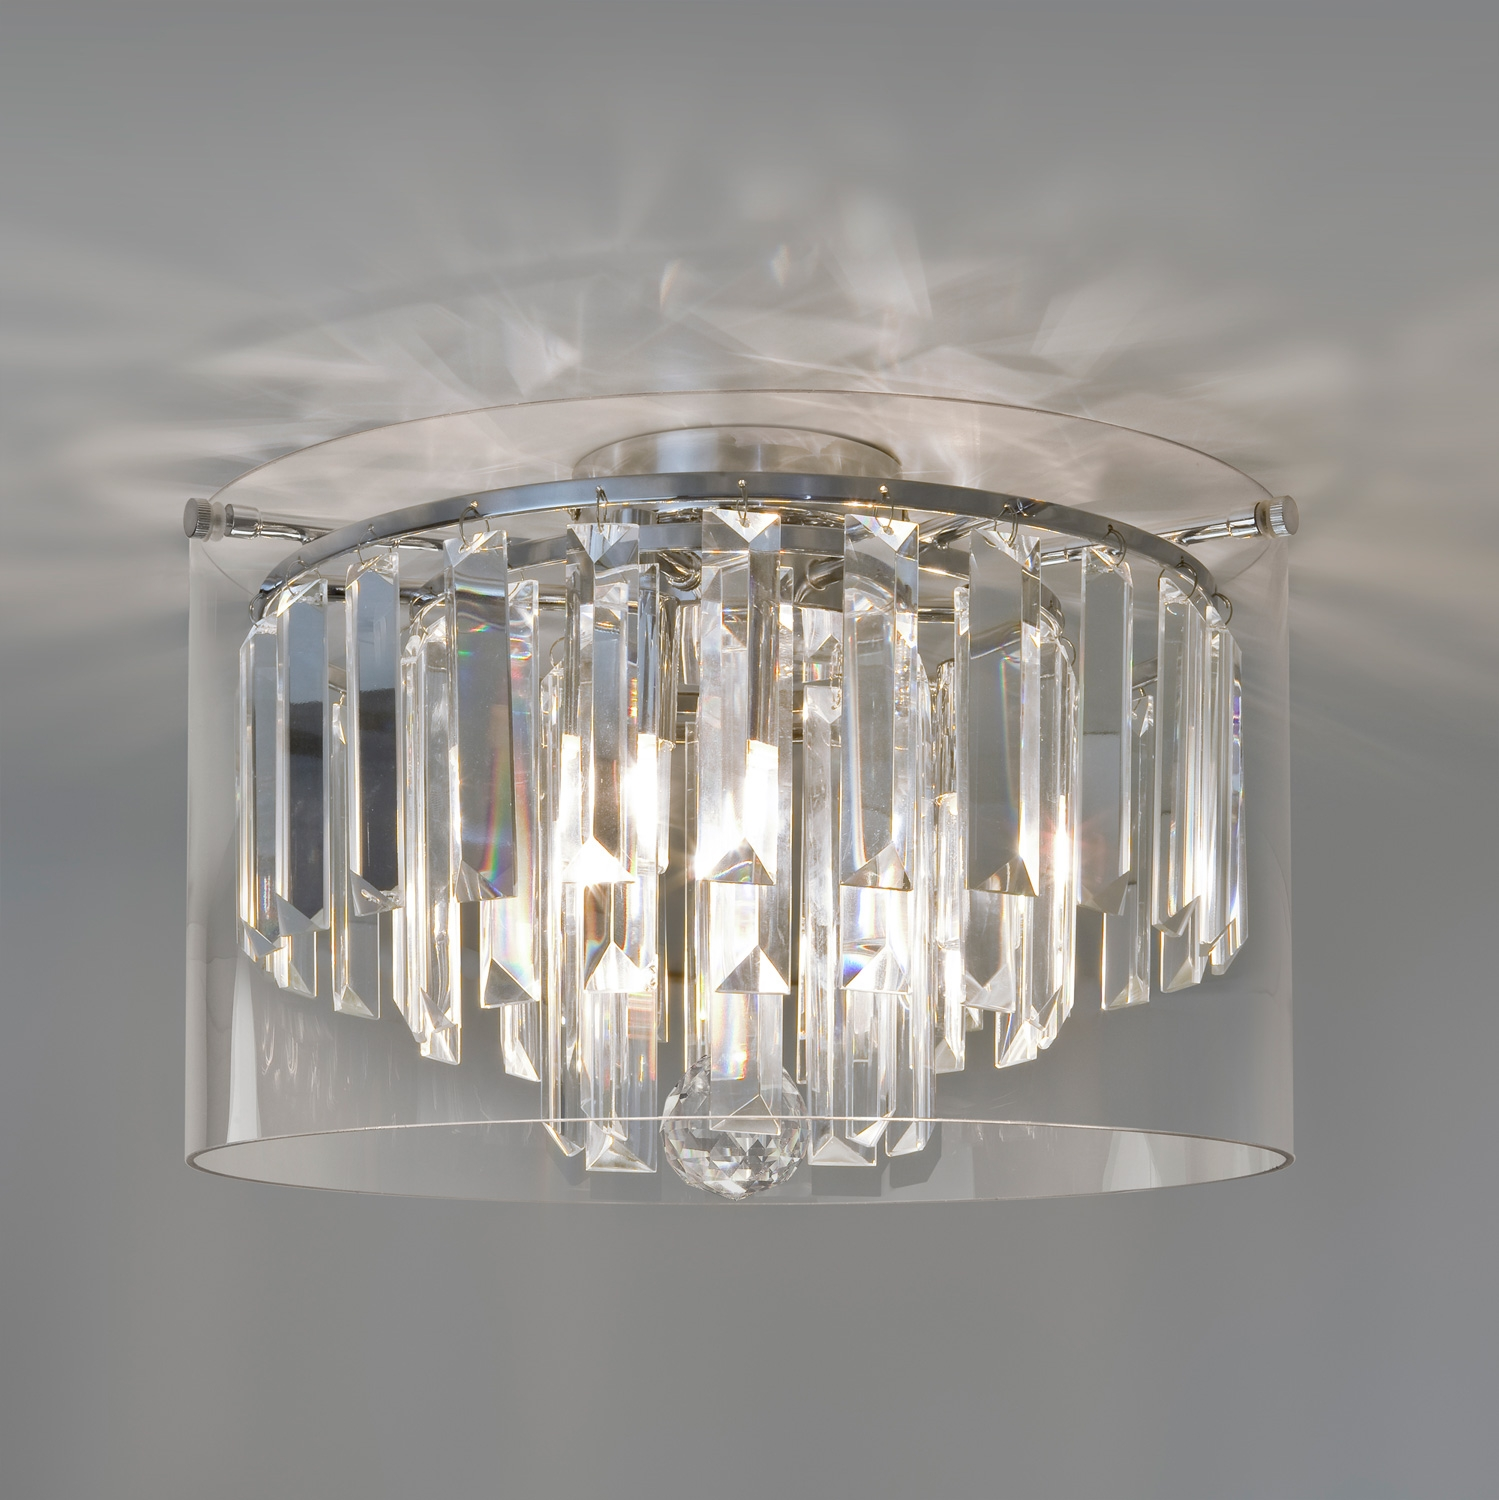 Chandelier For Bathroom Uk Creative Bathroom Decoration Regarding Flush Fitting Chandeliers (Image 6 of 15)